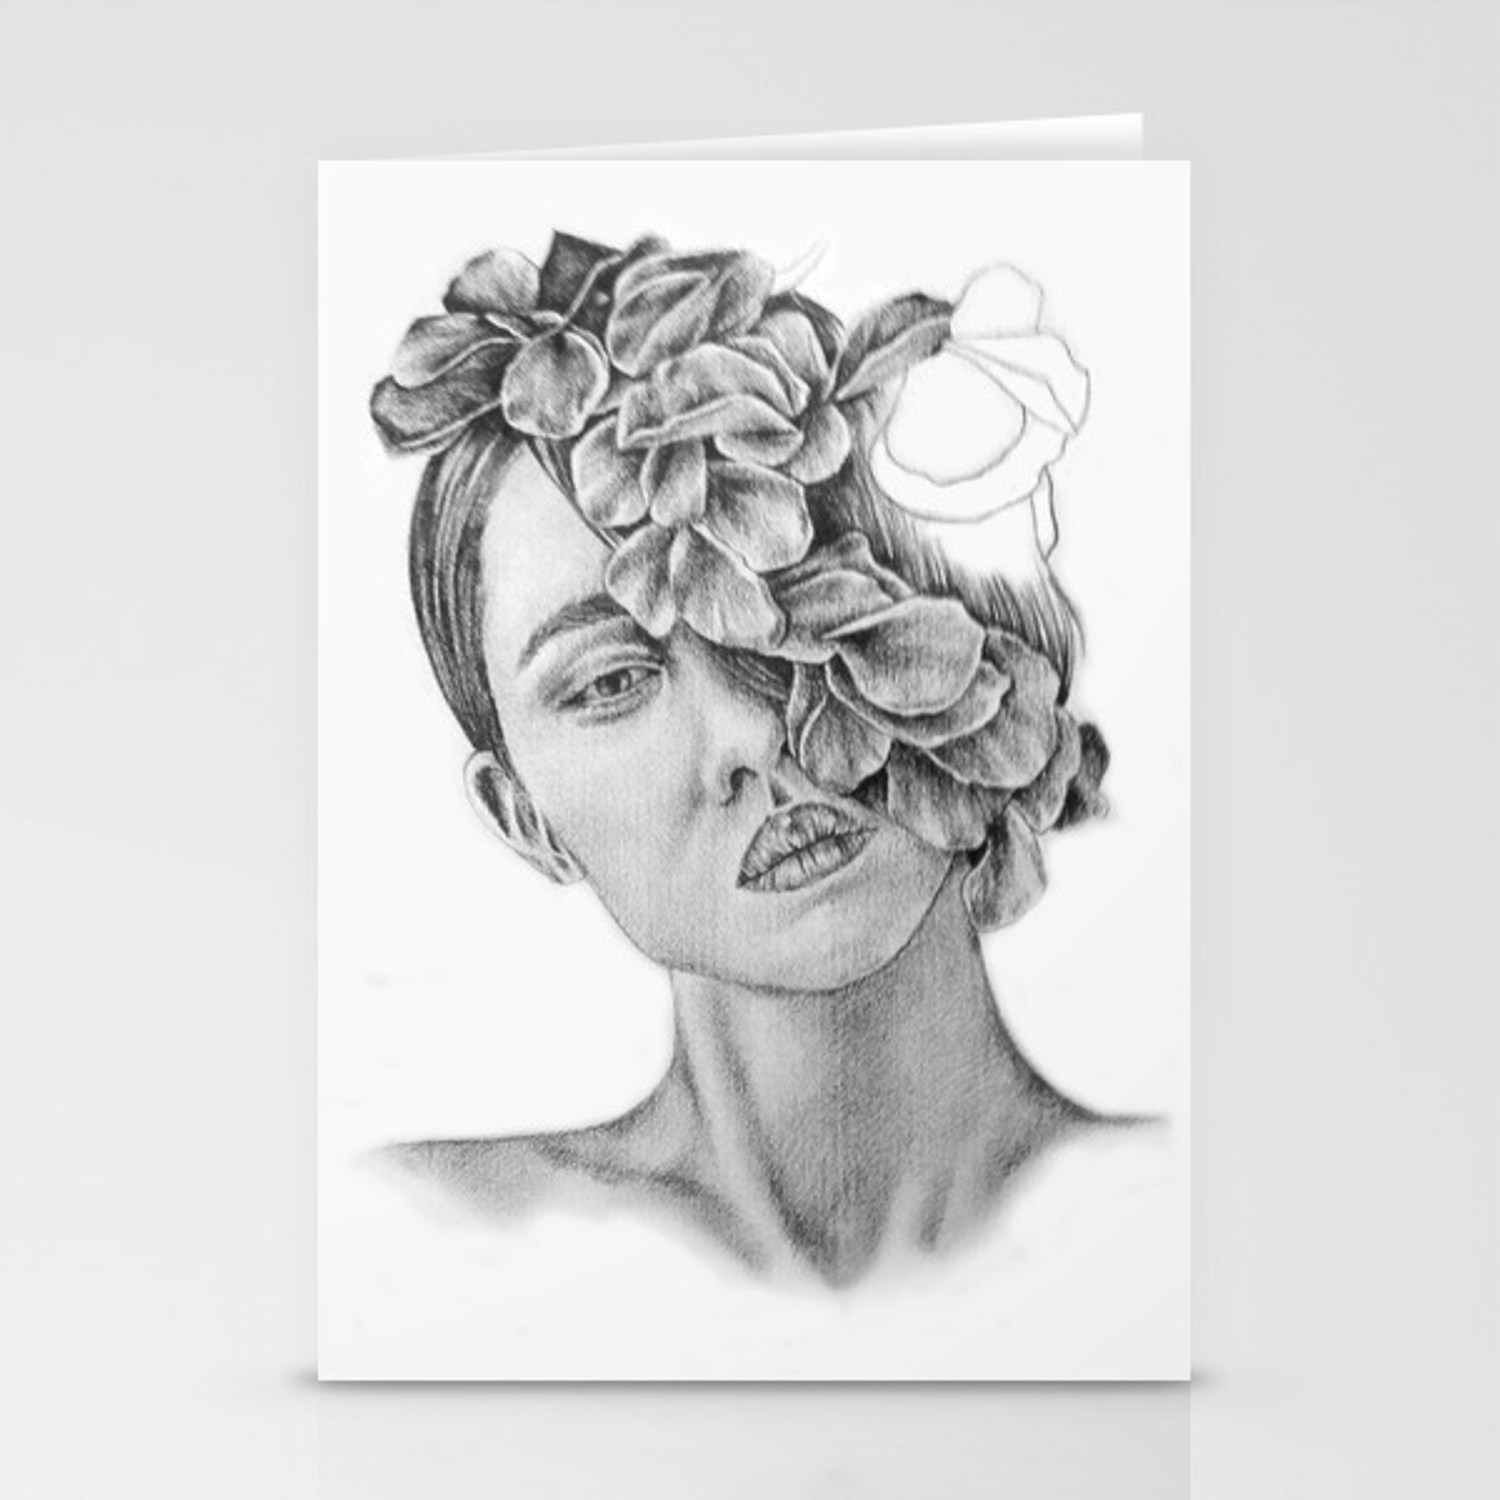 Art pencil drawing illustration portrait model flowers gift wall decor stationery cards by kathrynlisa